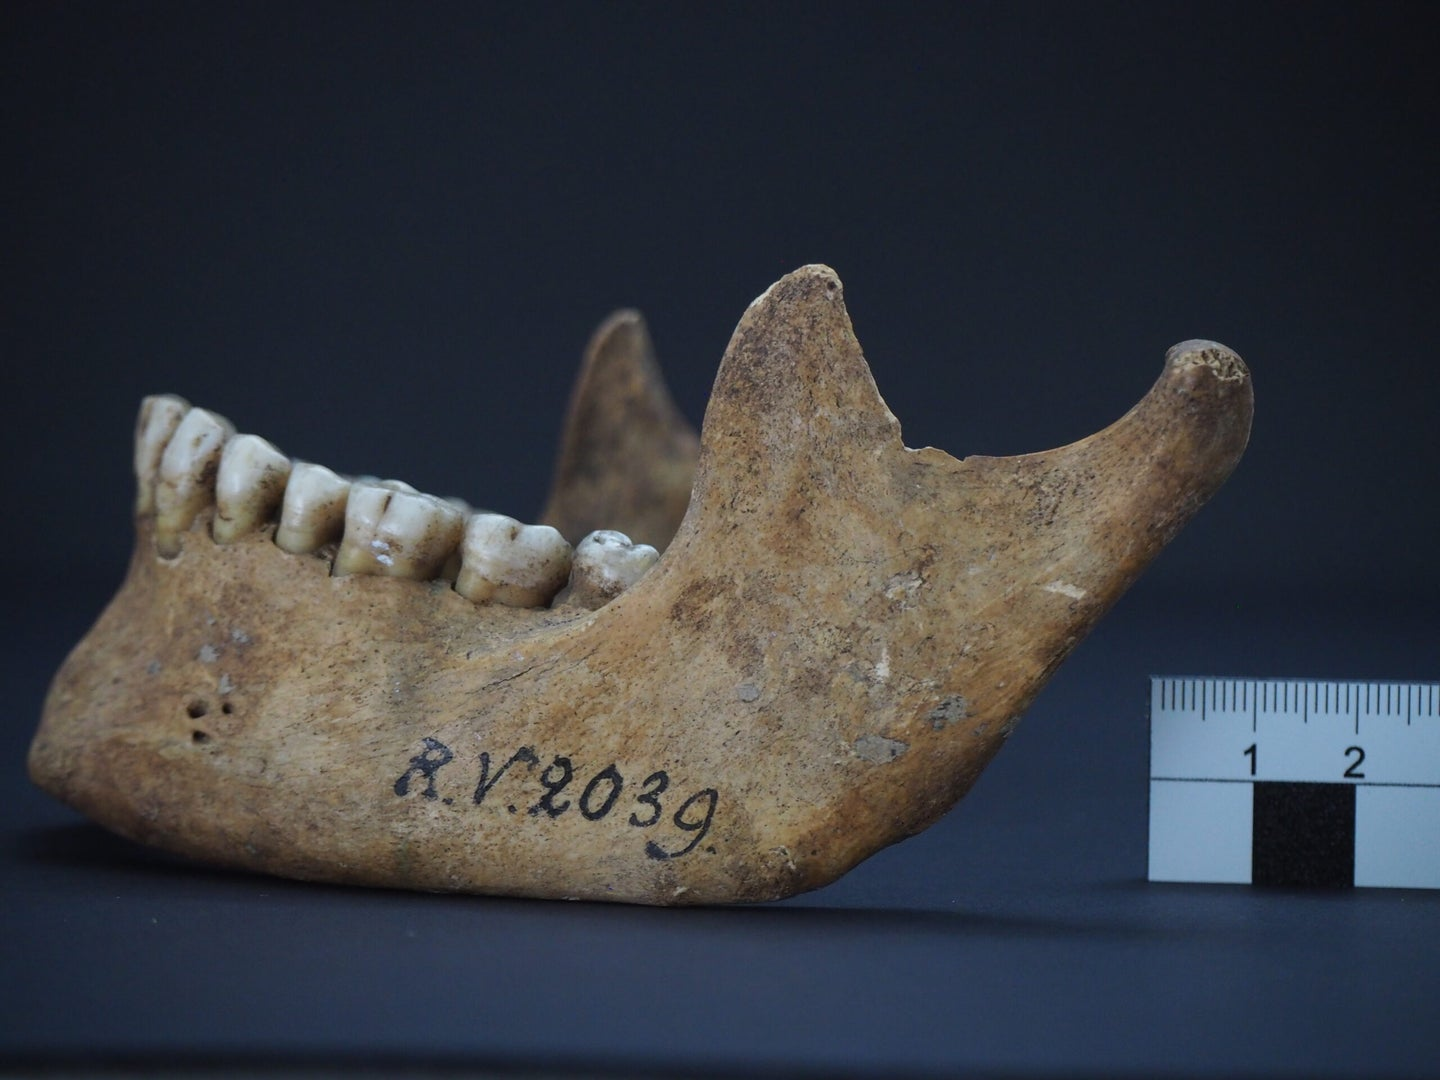 A highly weathered human jaw bone, labeled RV 2039.